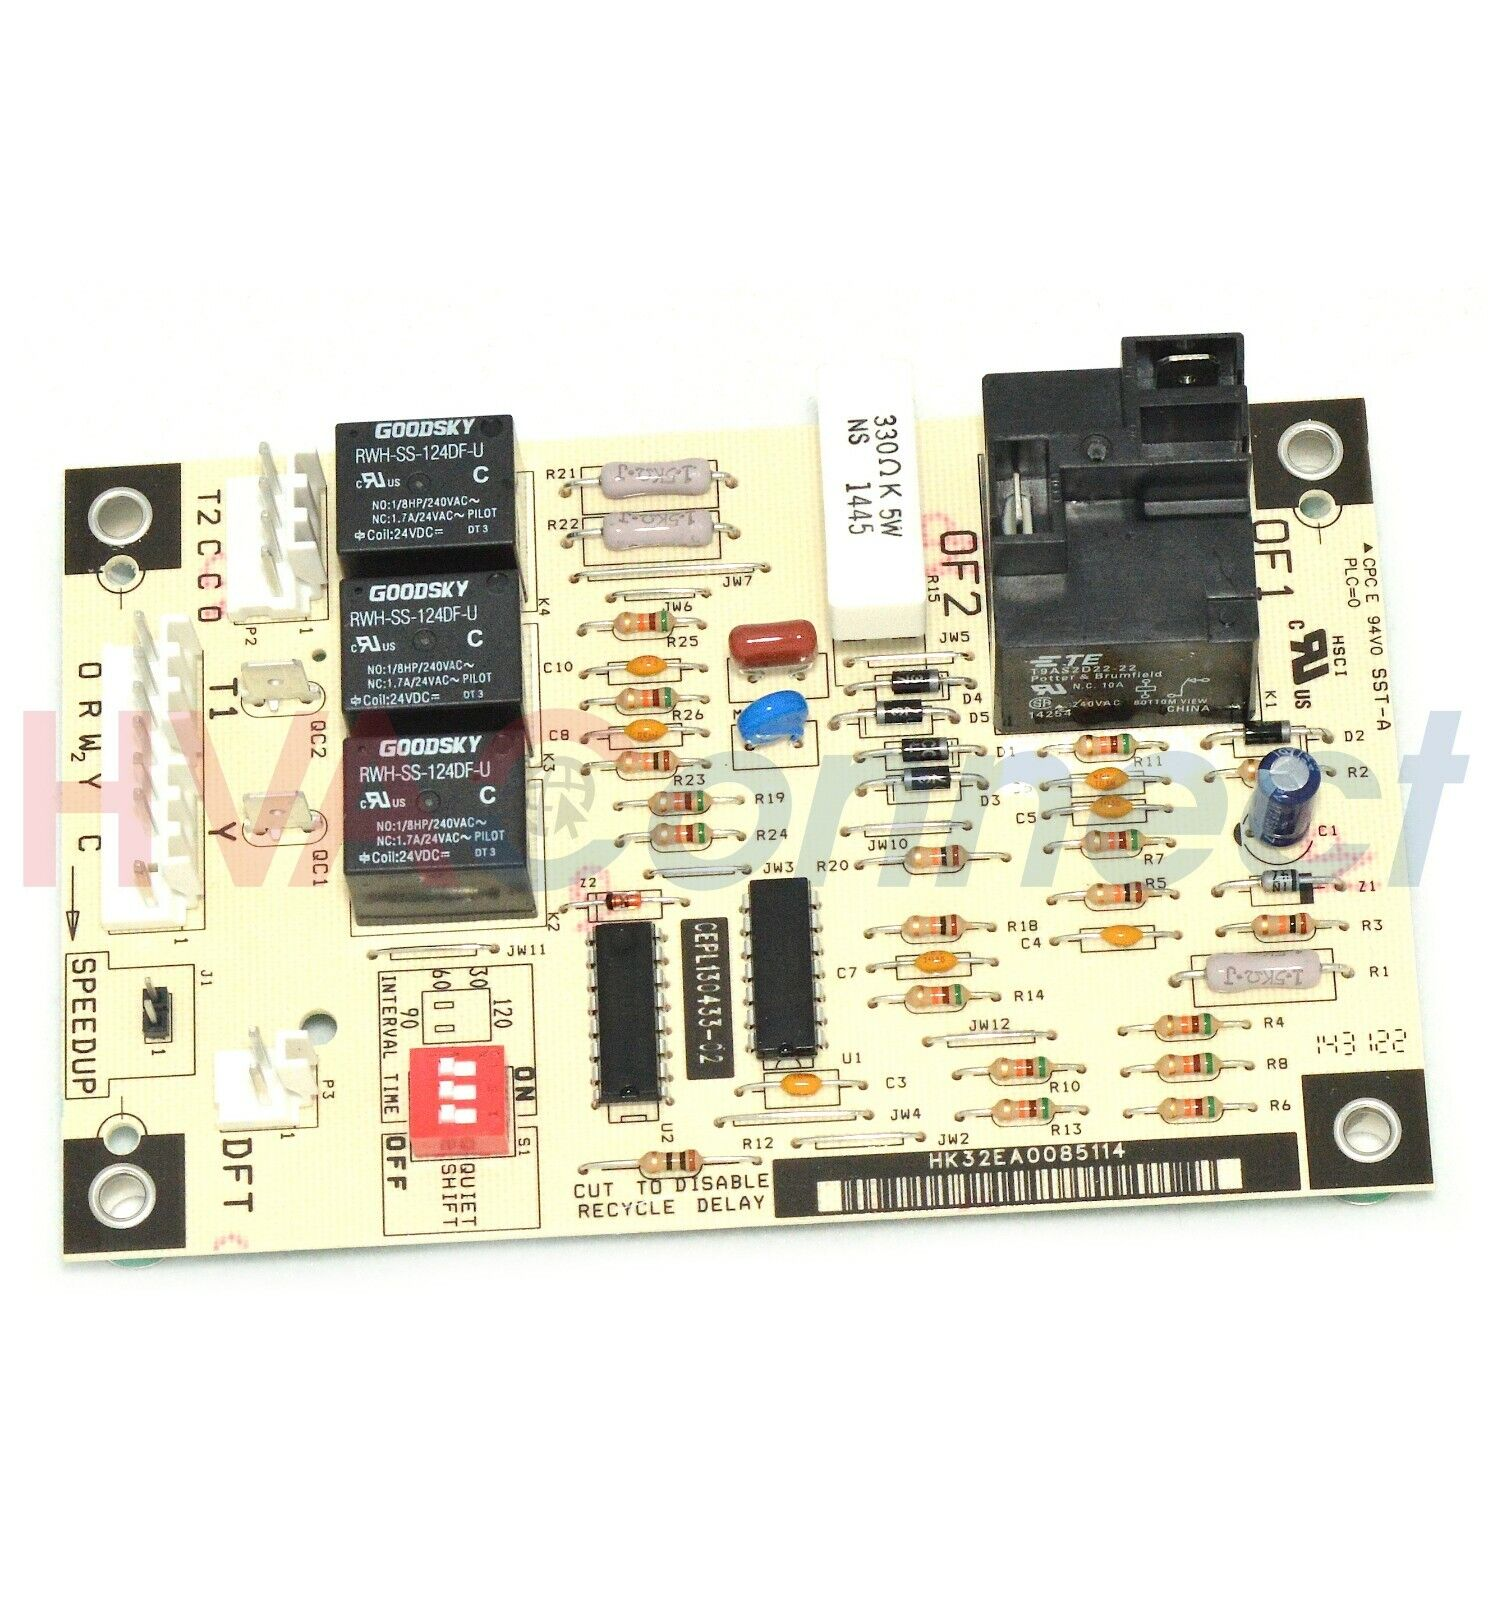 payne gas furnace circuit board circuit board hh84aa017 wiring rh killarneyhouse camerashop pw